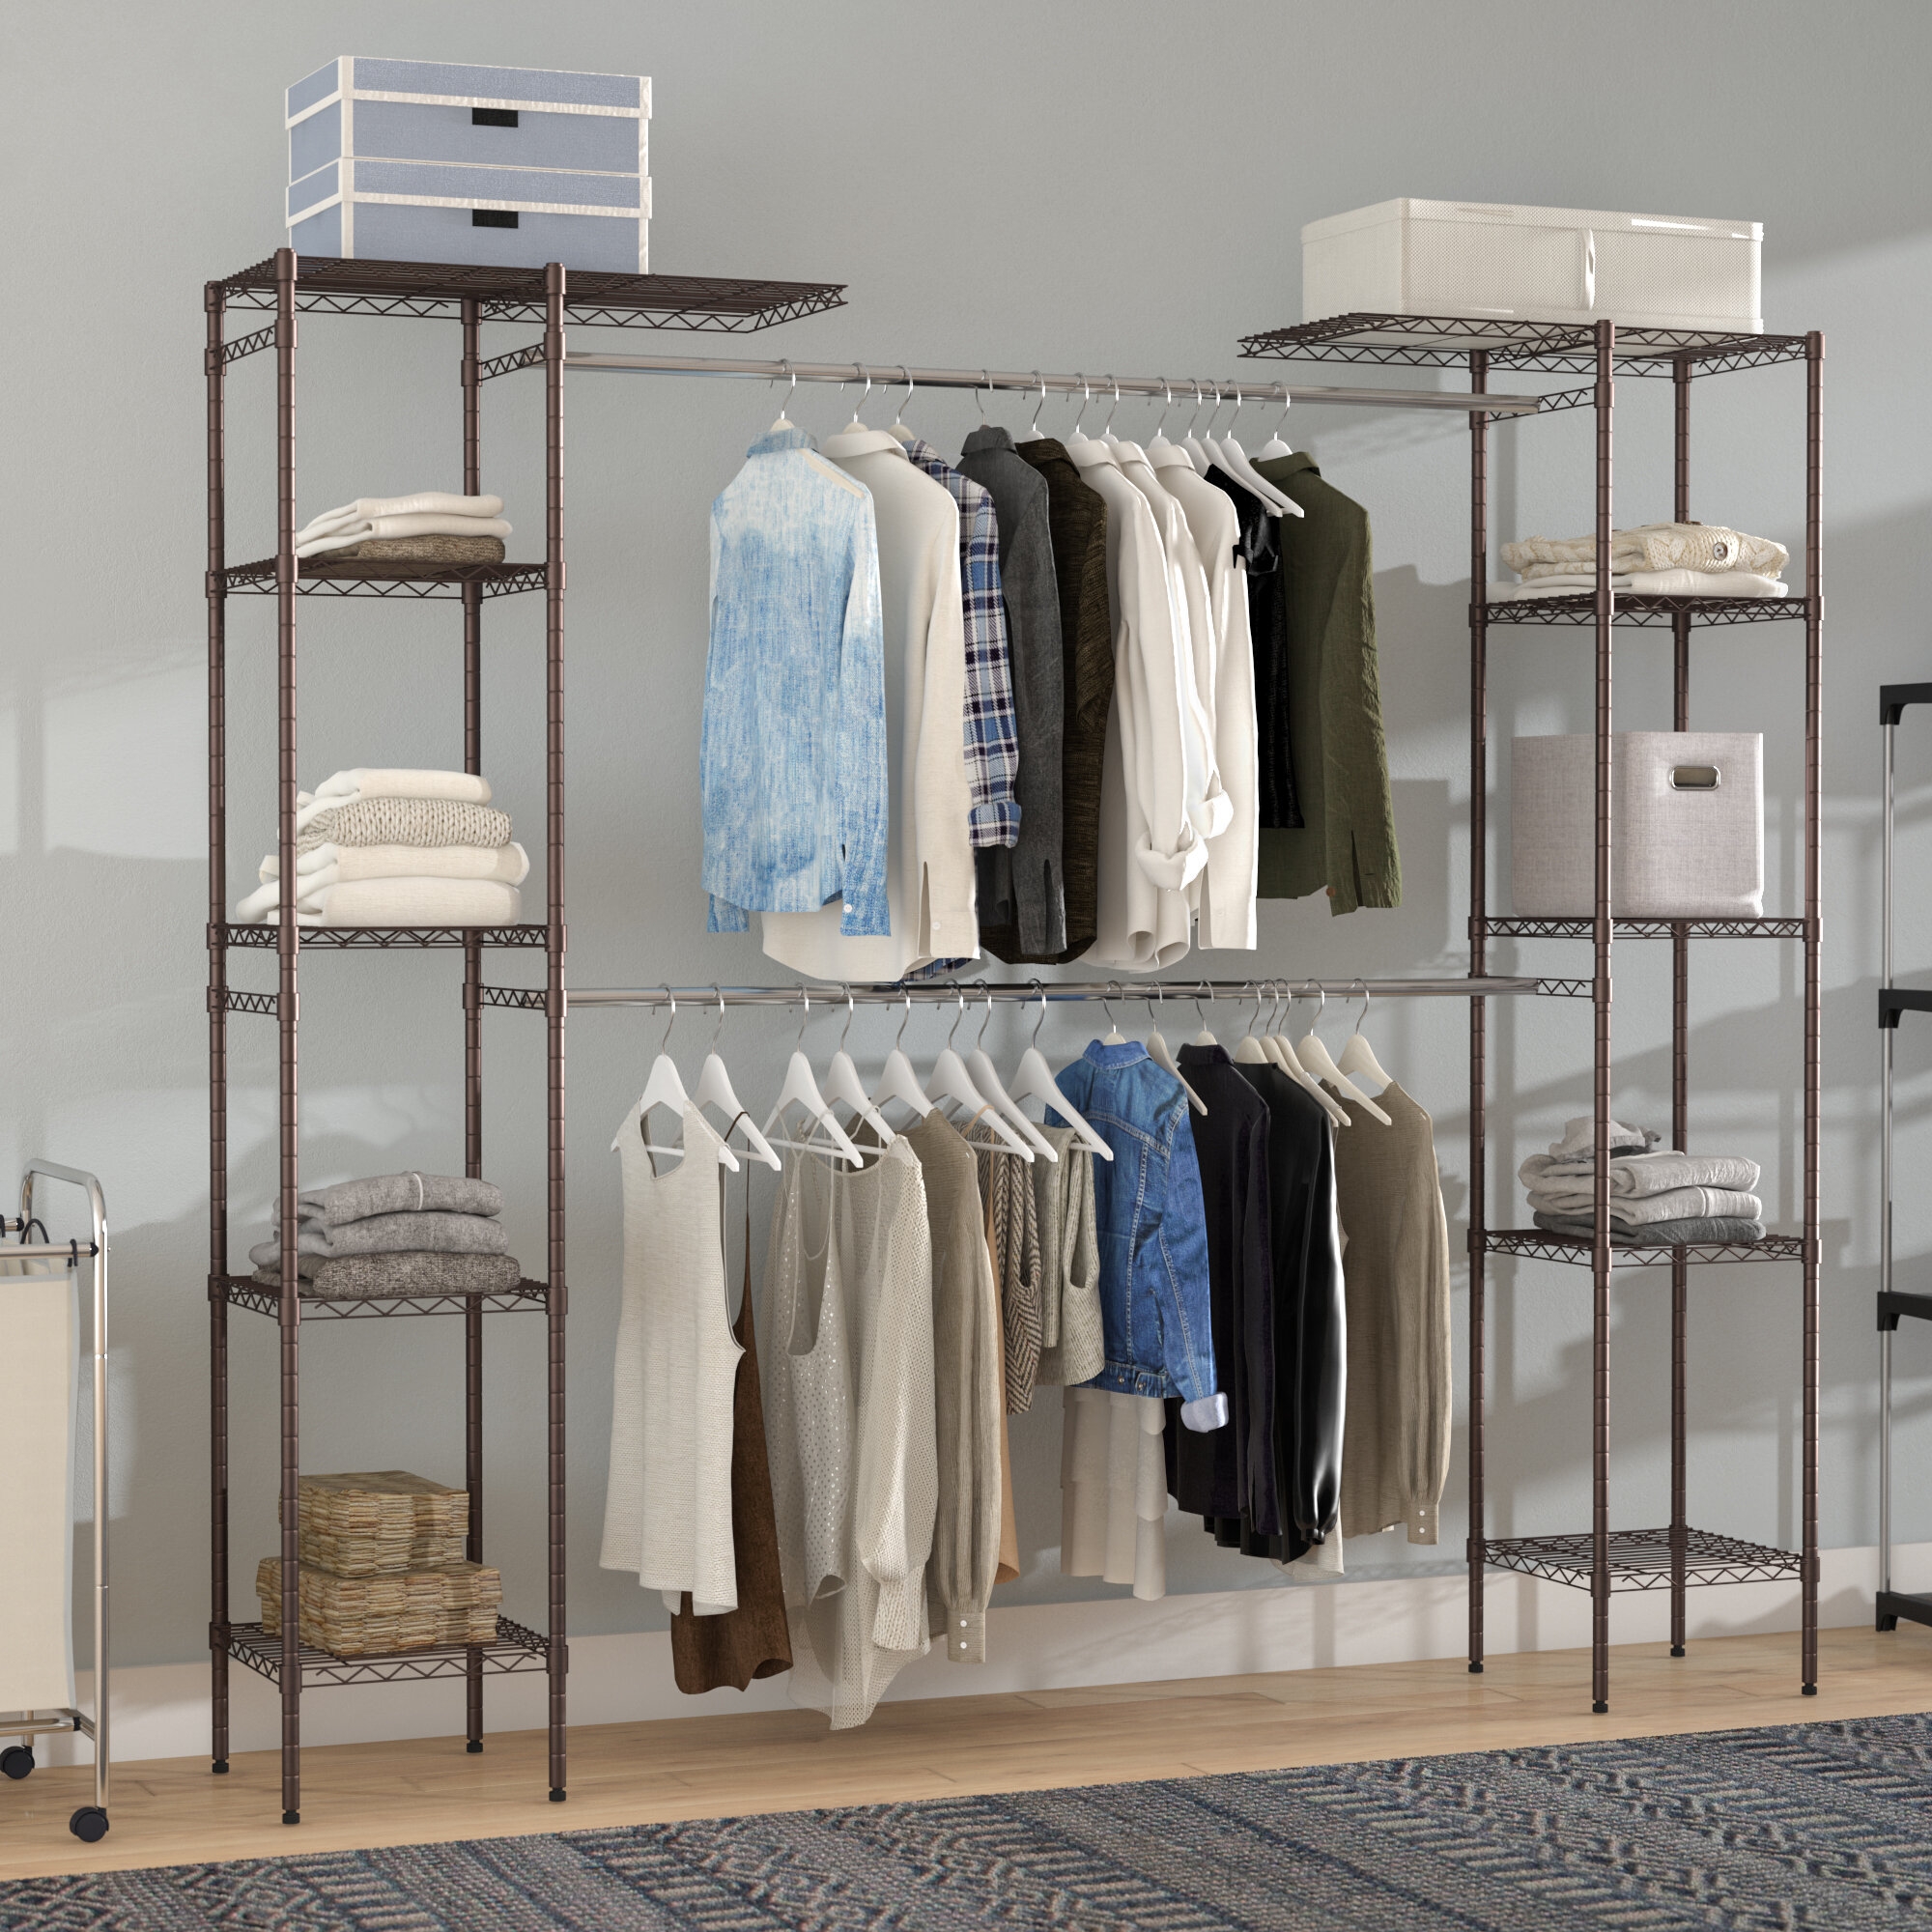 outstanding custom system picture discount closet organizing organizer wardrobe freestanding systems discontinued inspirations drawer of size full